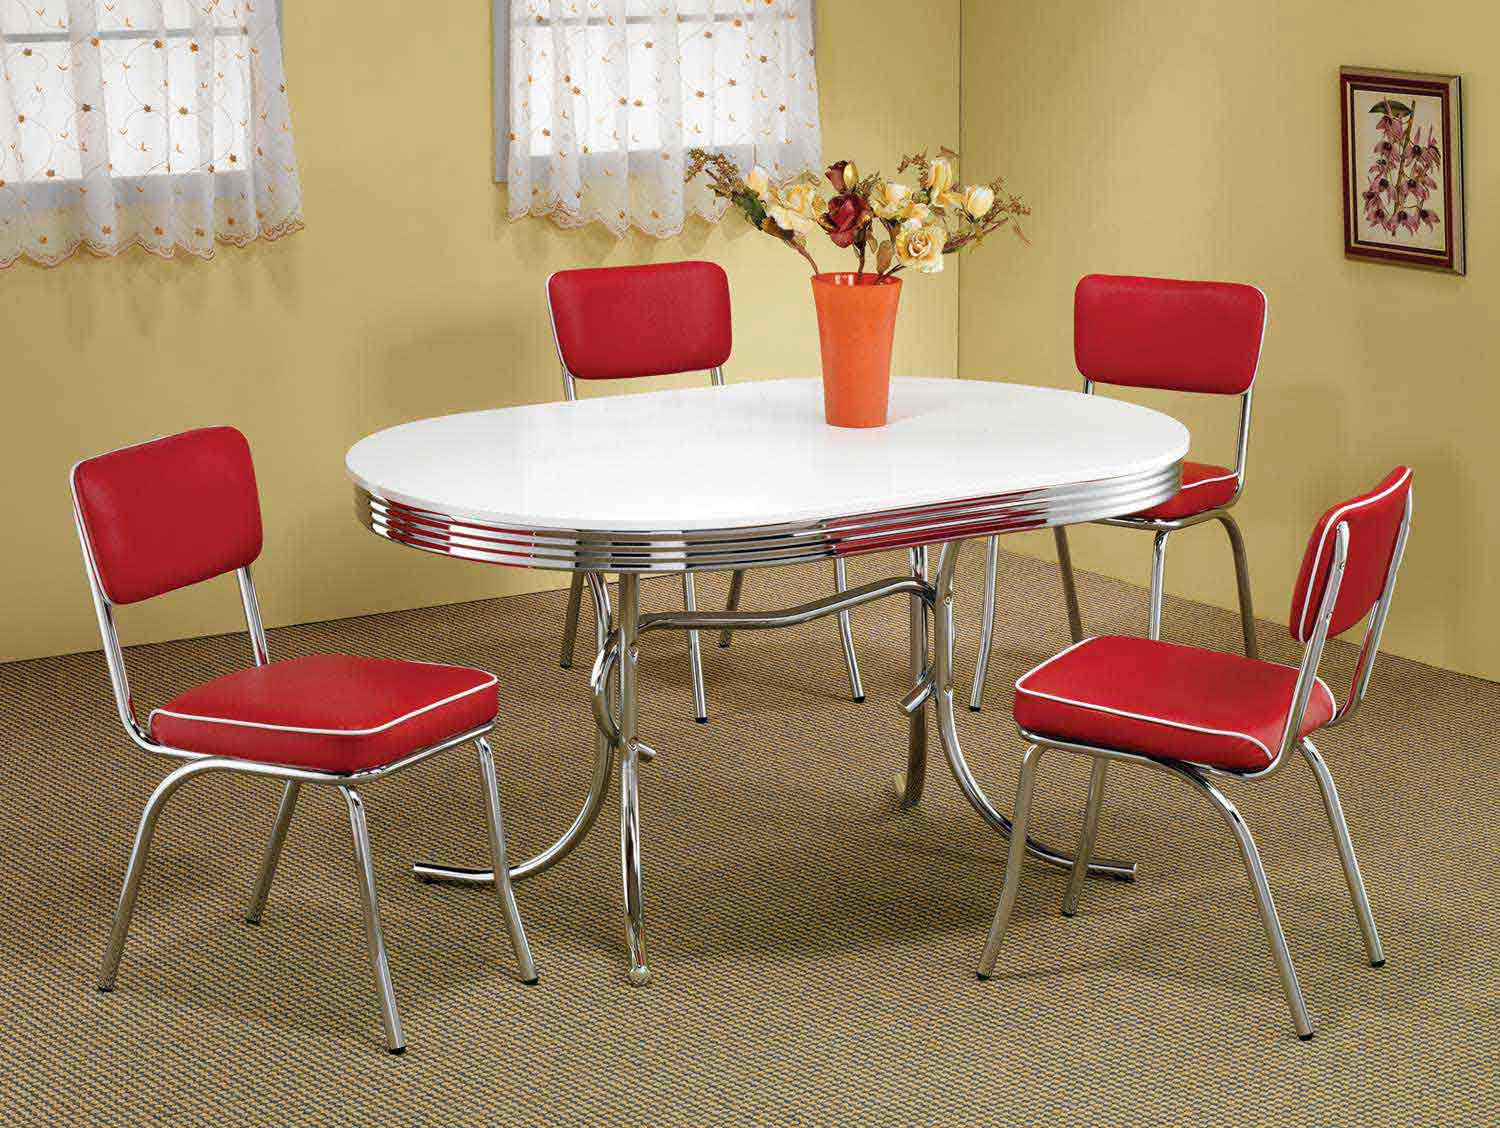 Coaster Mix & Match Oval Retro Dining Set - Red Chair